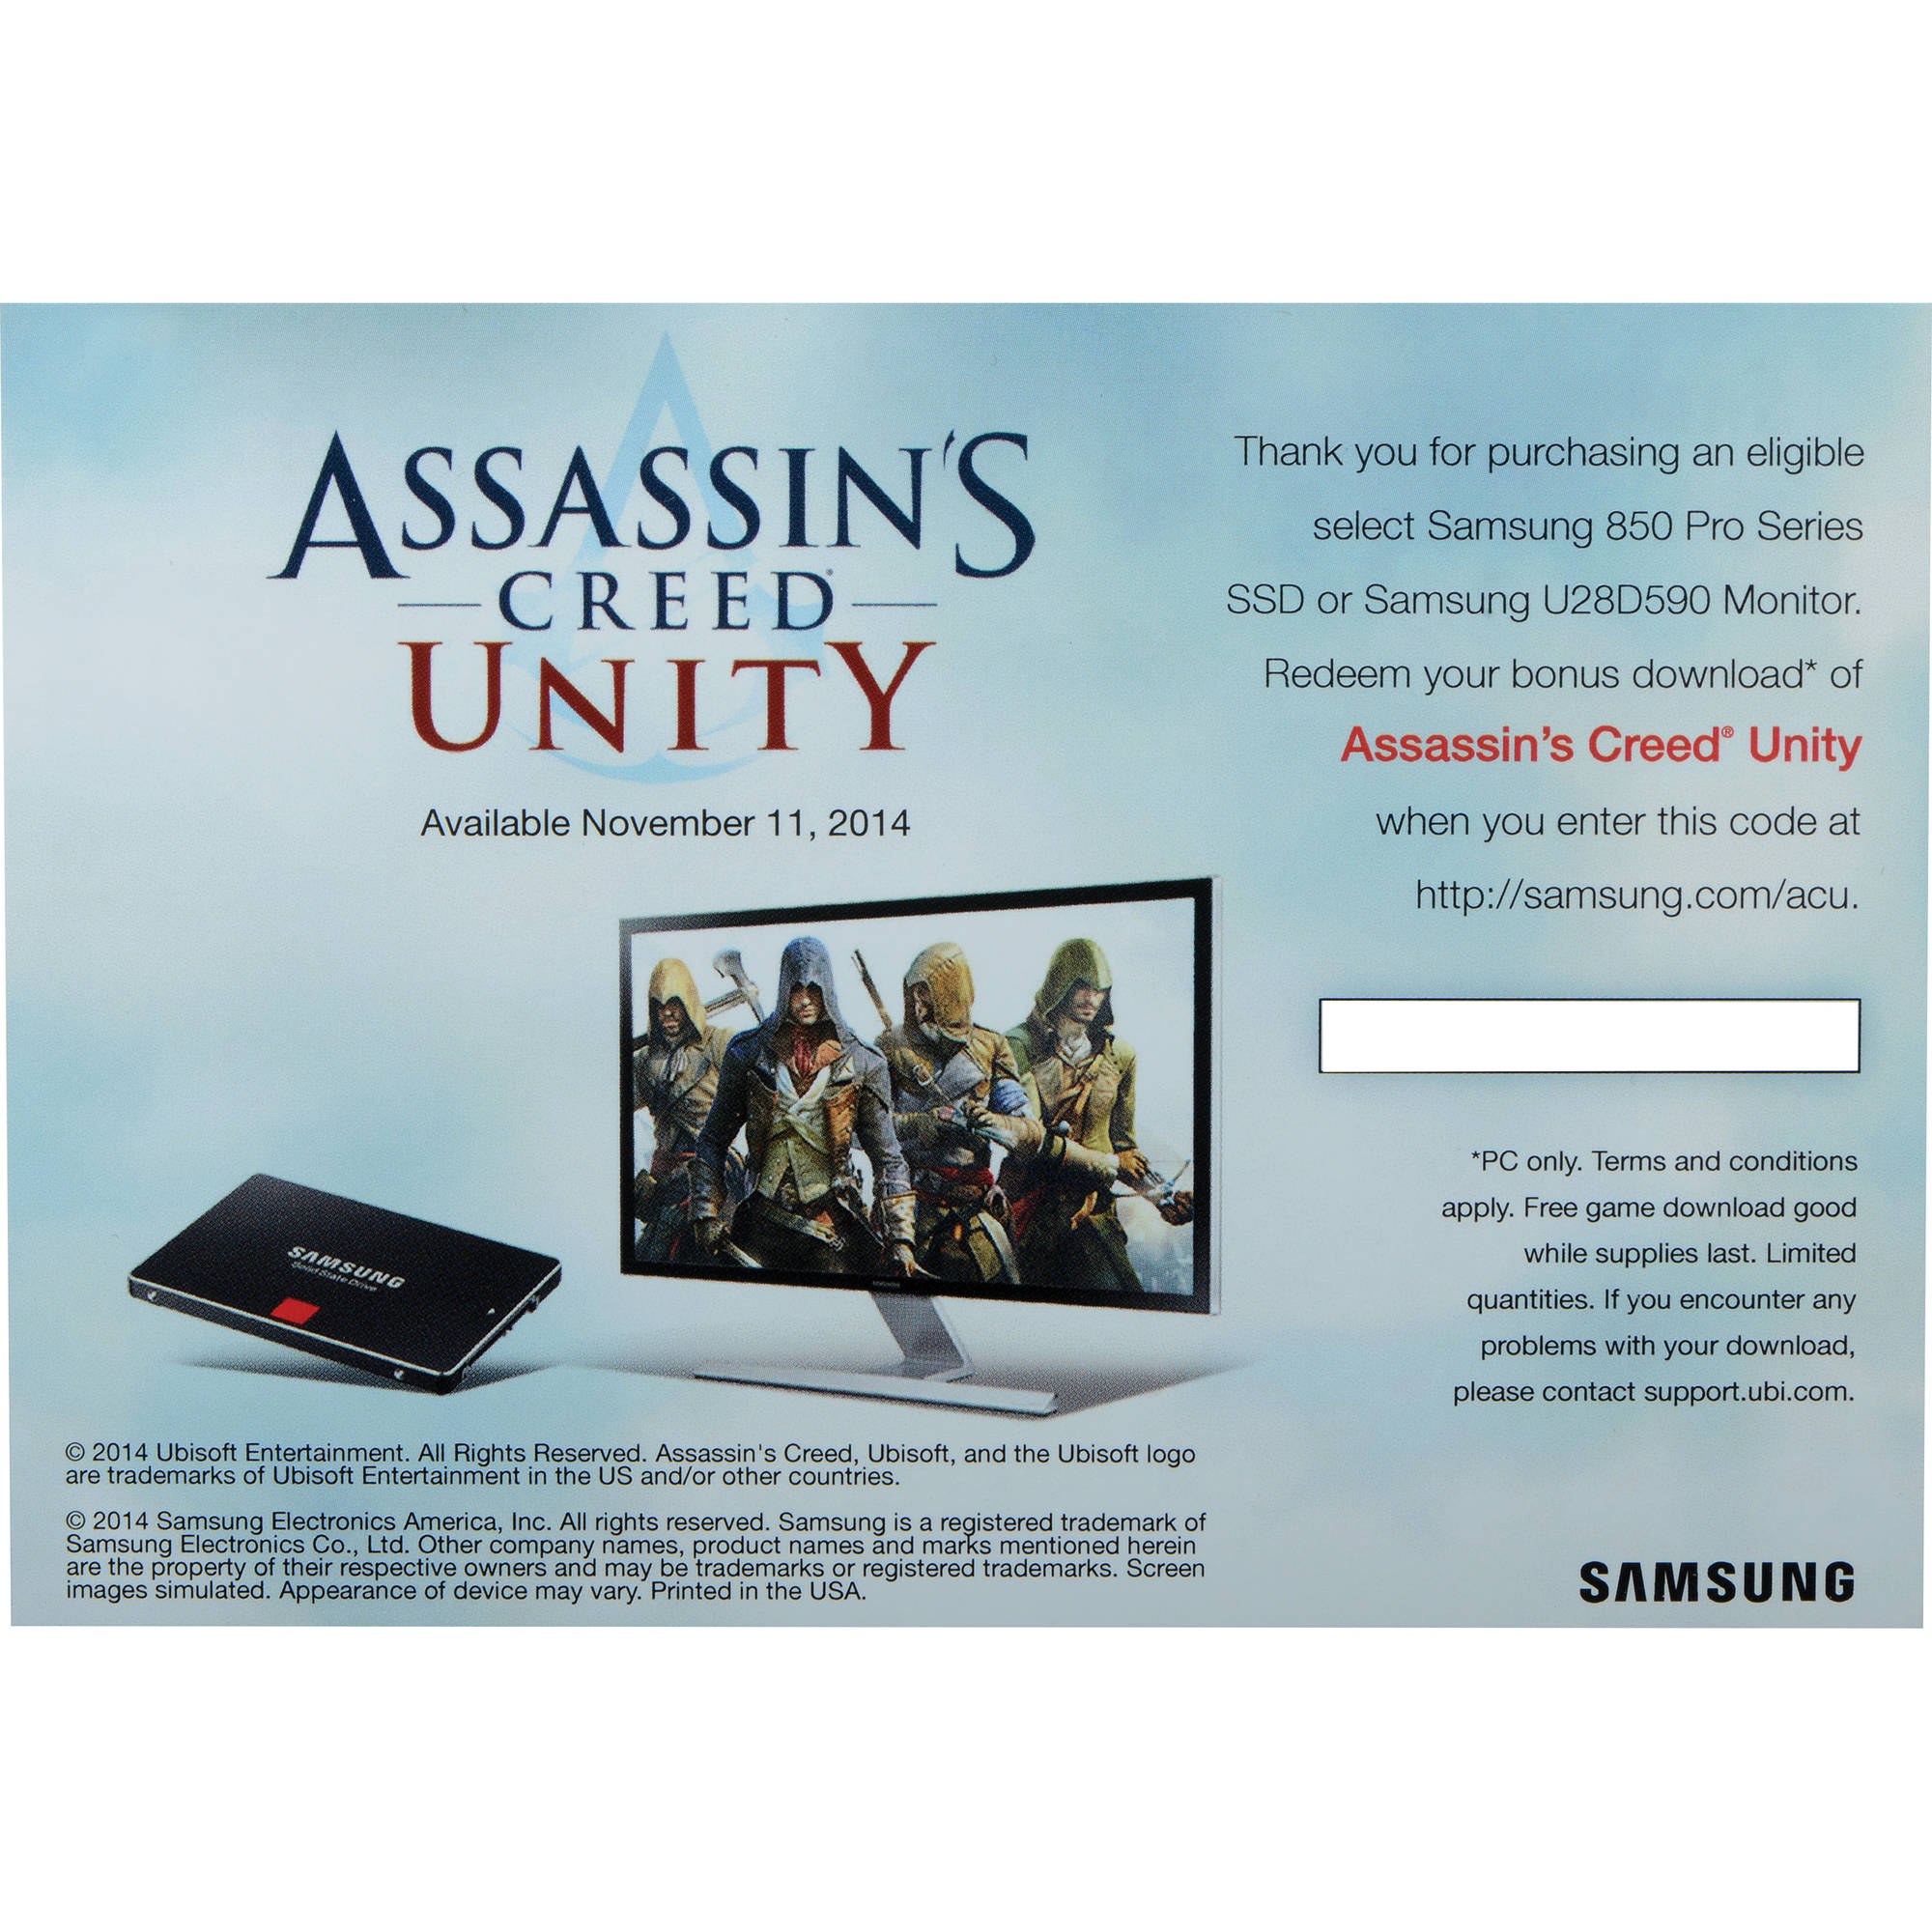 Samsung Assassin's Creed Unity Game Download (Windows)